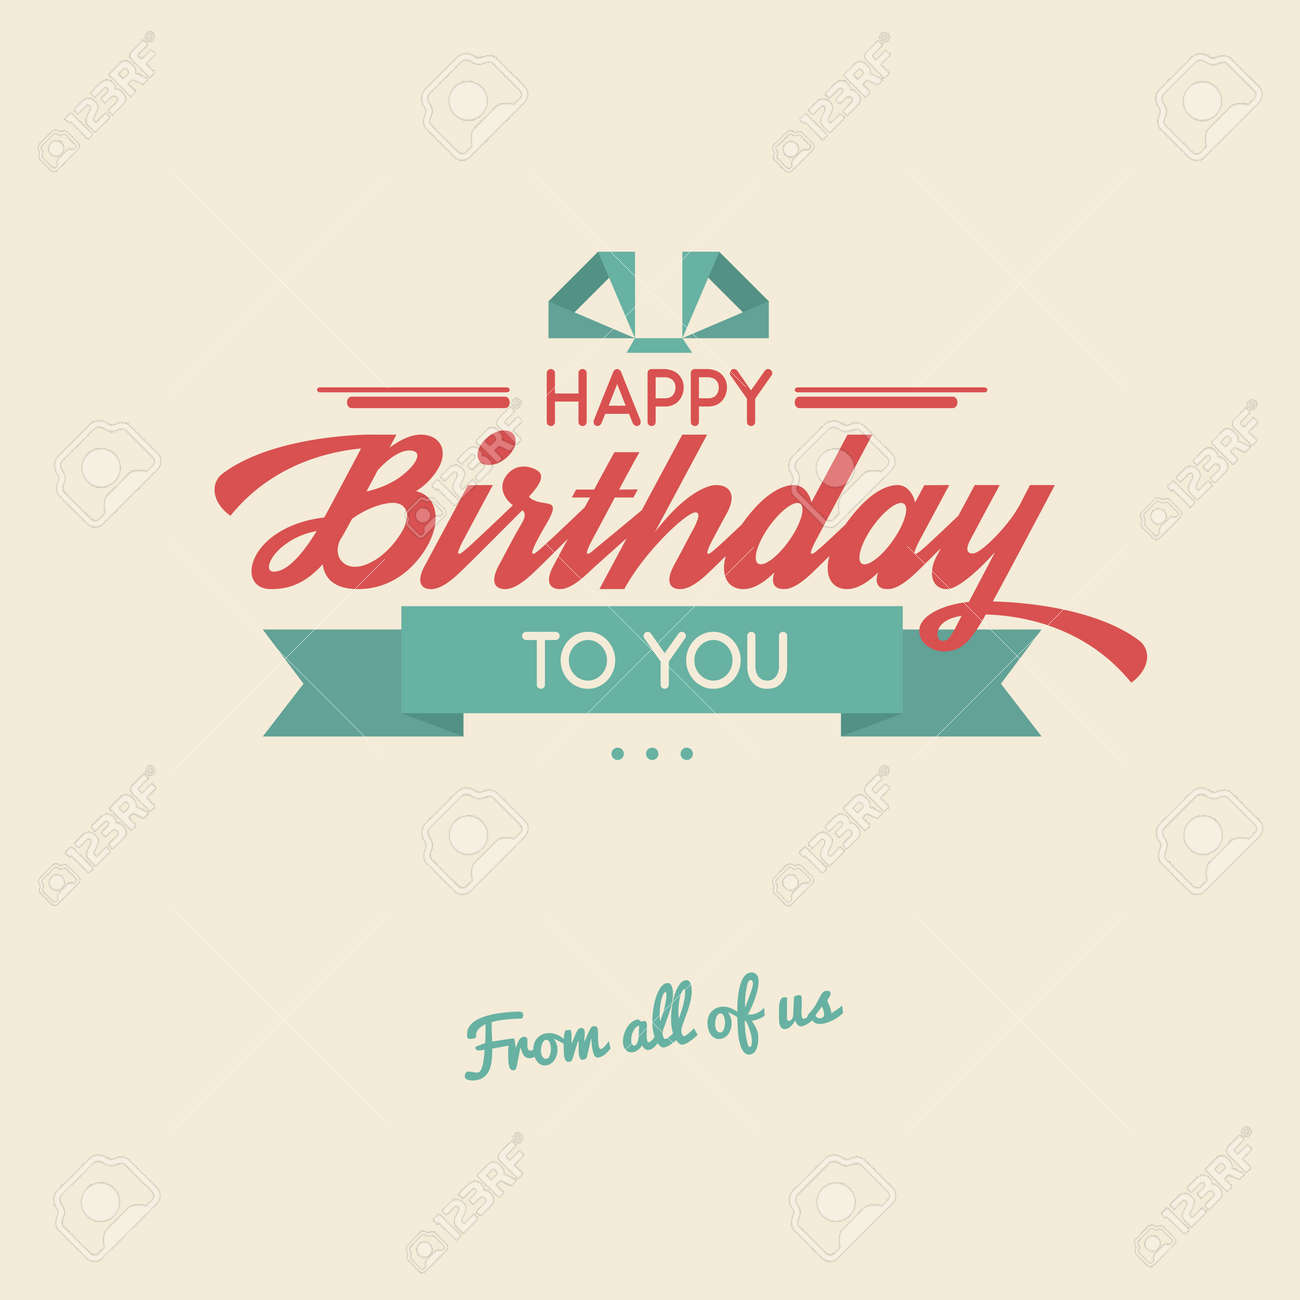 Happy Birthday To You Retro Vector Illustration Vintage Background Beautiful Lettering Greeting Card